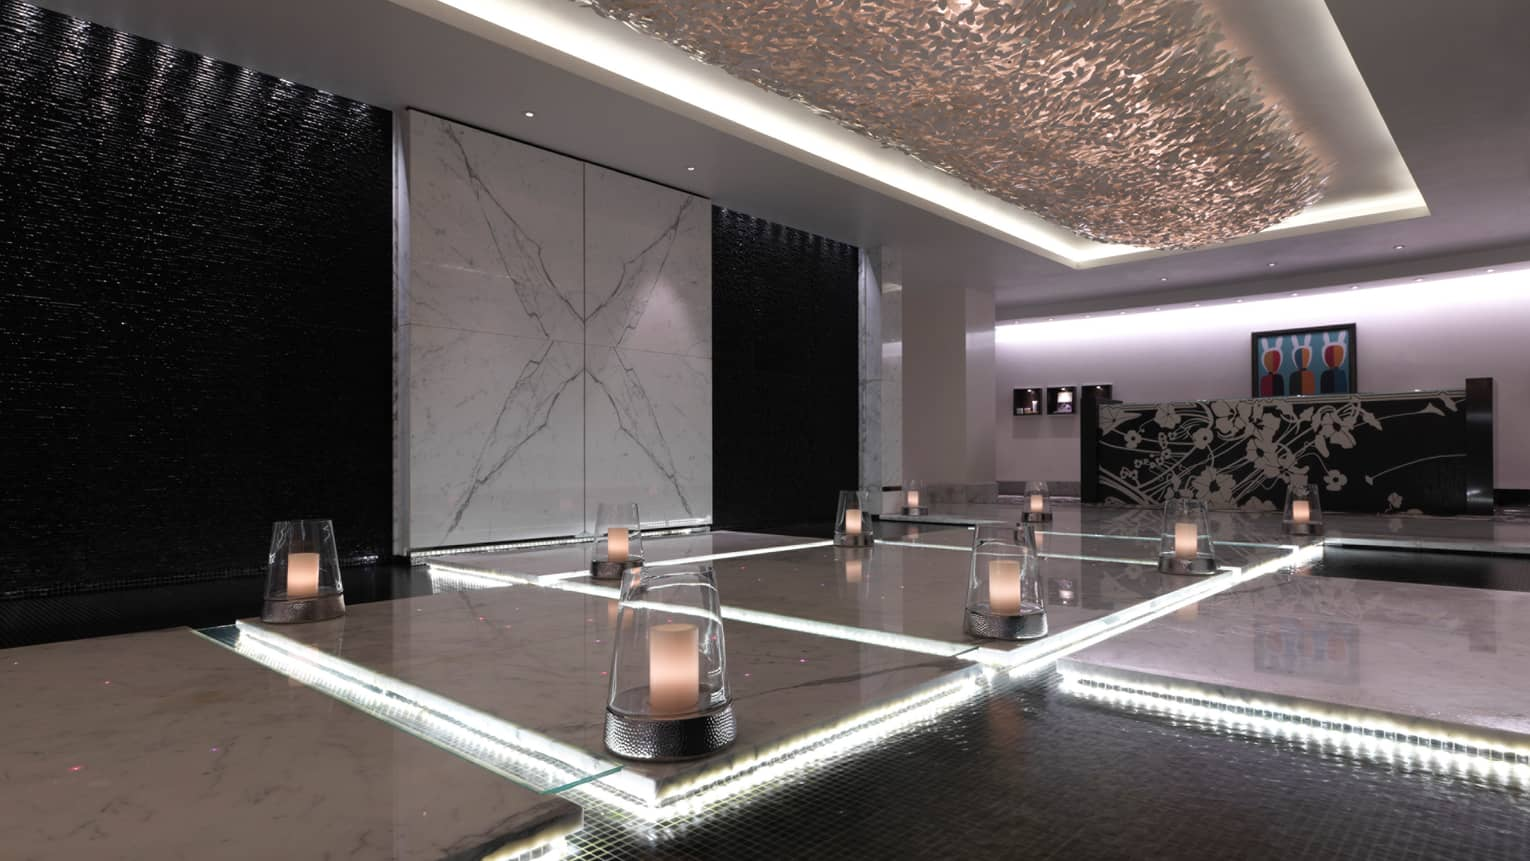 Glowing candles under glass domes placed around black-and-white marble floor